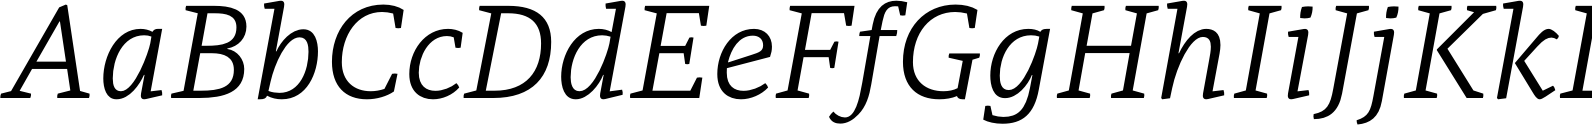 PFAdamantPro LightItalic